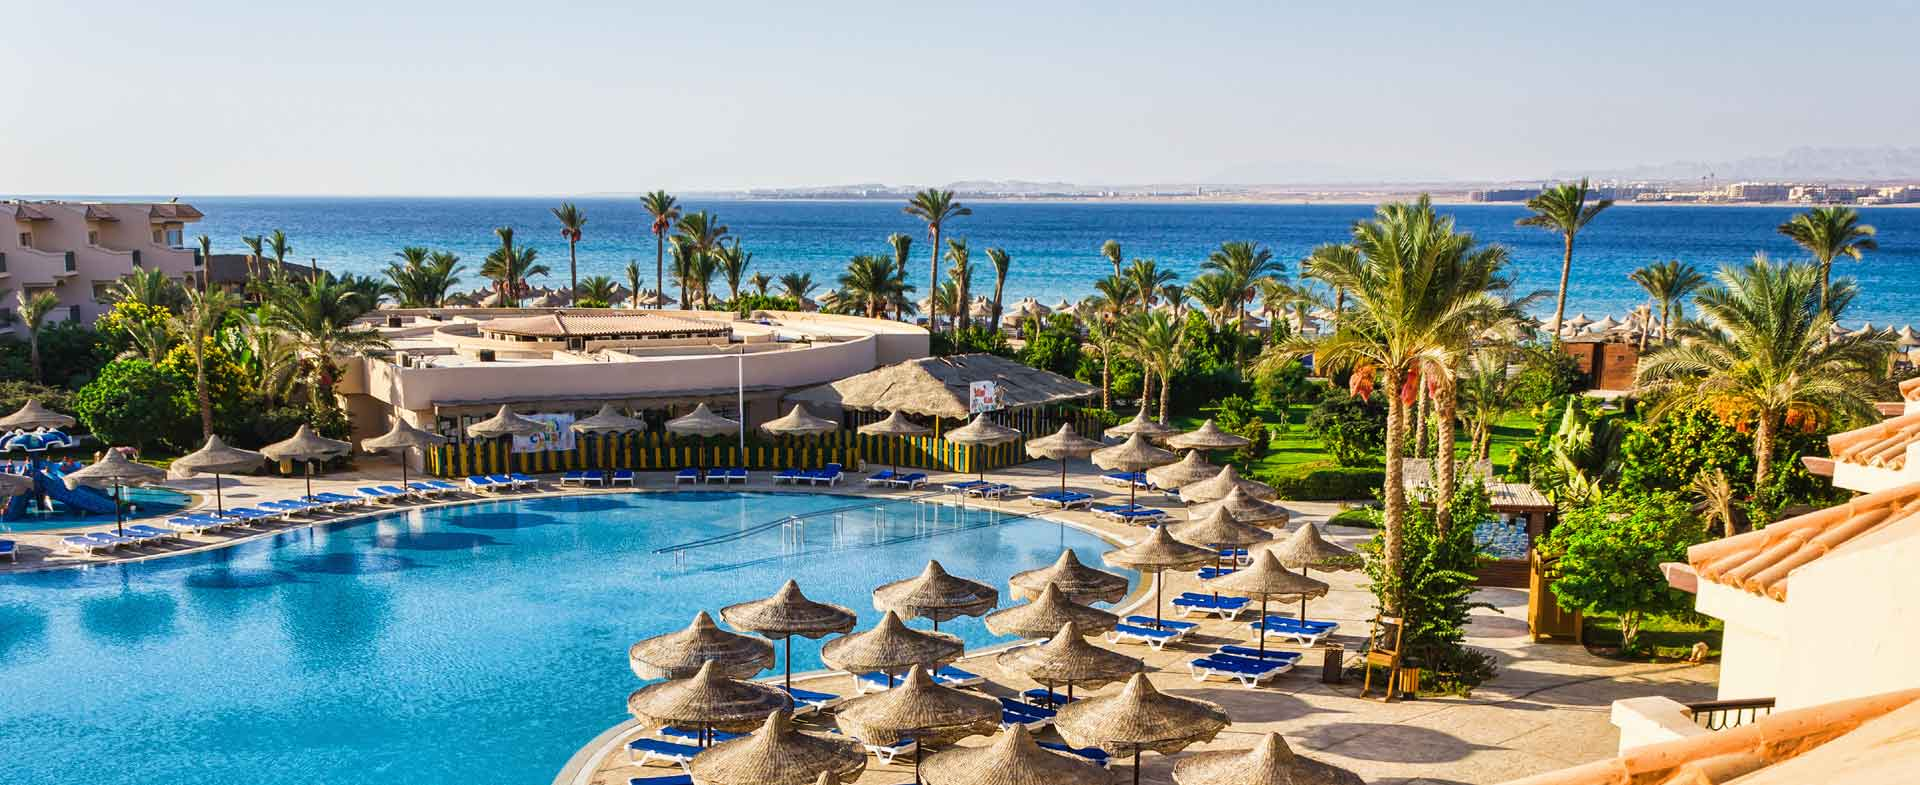 Sharm el Sheikh real estate agency